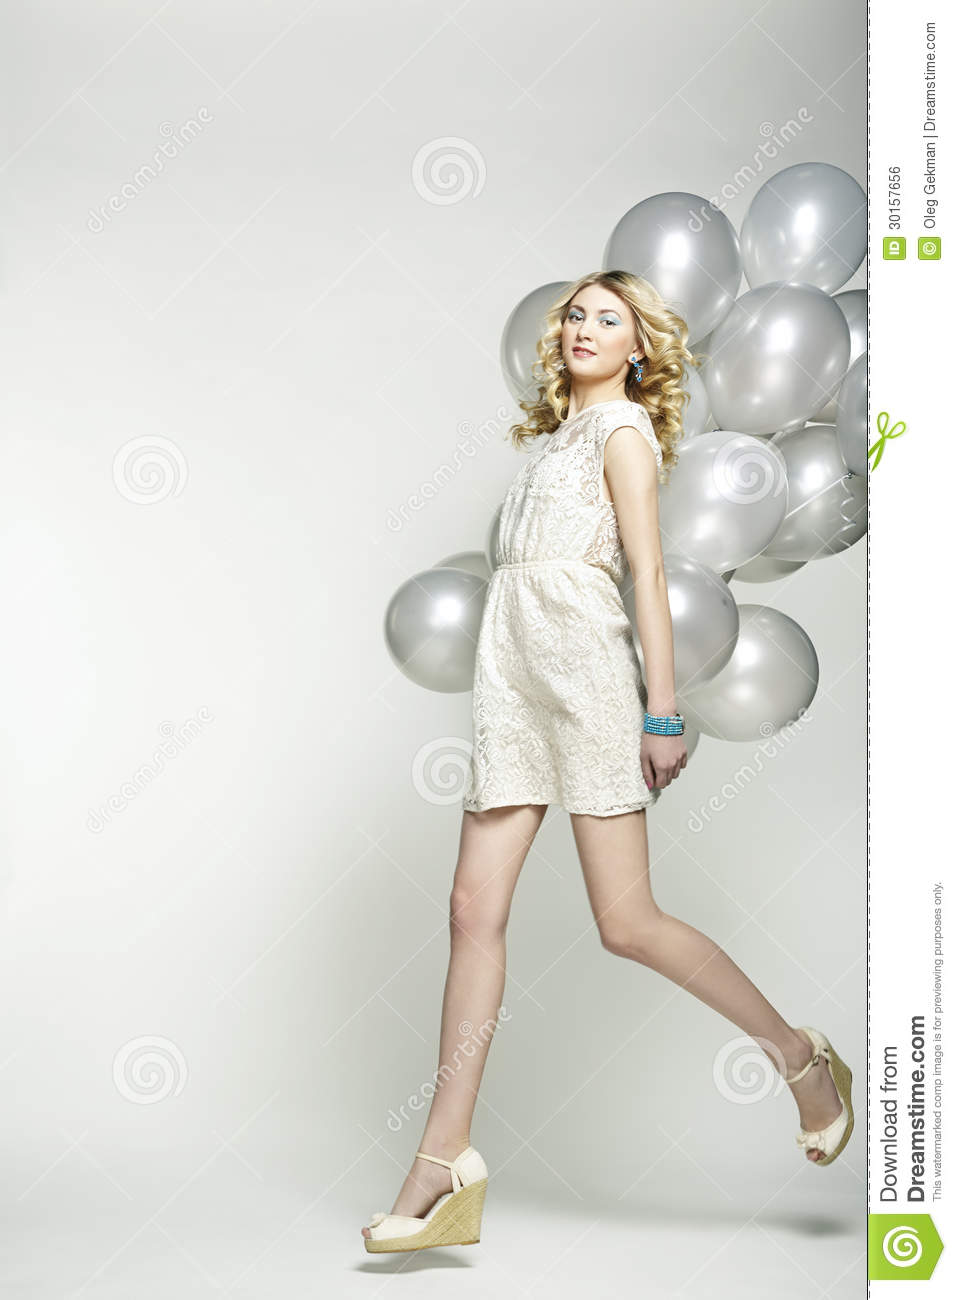 Fashion photo of beautiful woman with balloon girl posing for A beautiful you at vesuvio salon studios